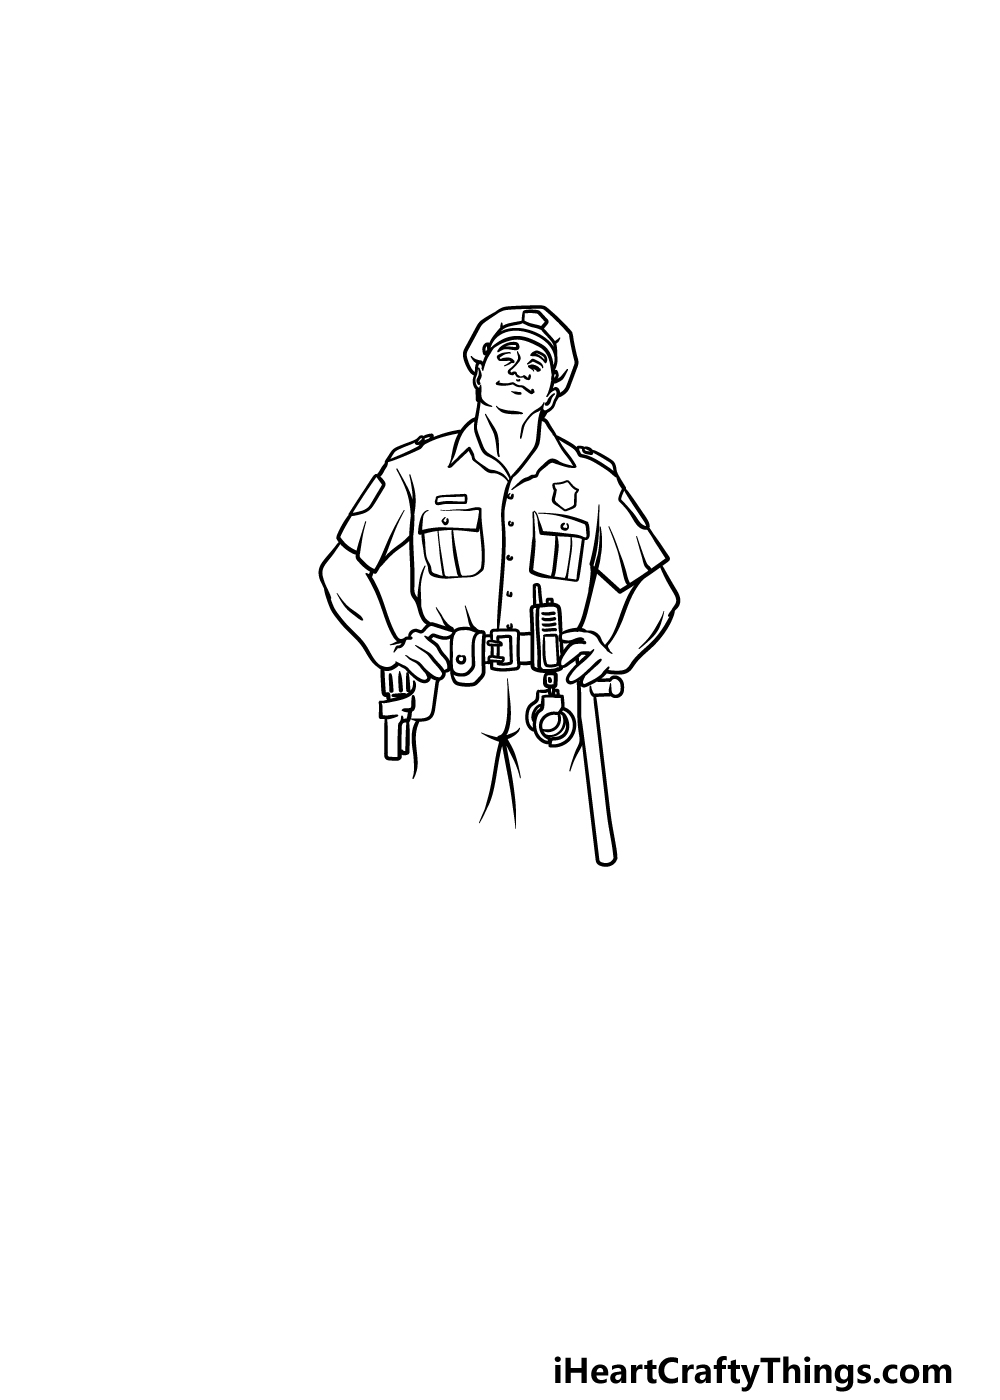 drawing a police officer step 5